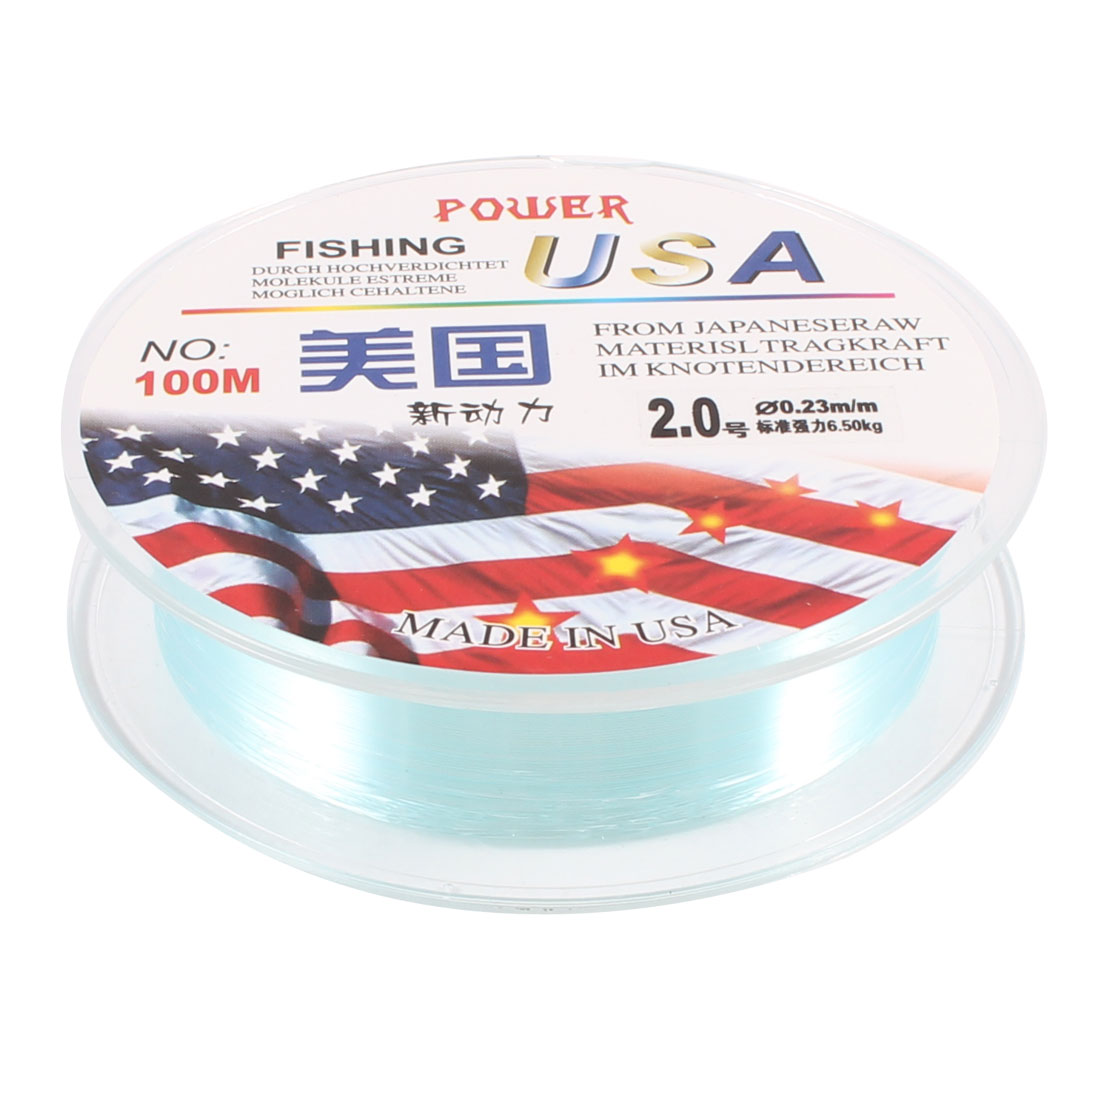 100M 2.0# 0.23mm Dia 6.5Kg Cyan Nylon Freshwater Fishing Line Thread Reel